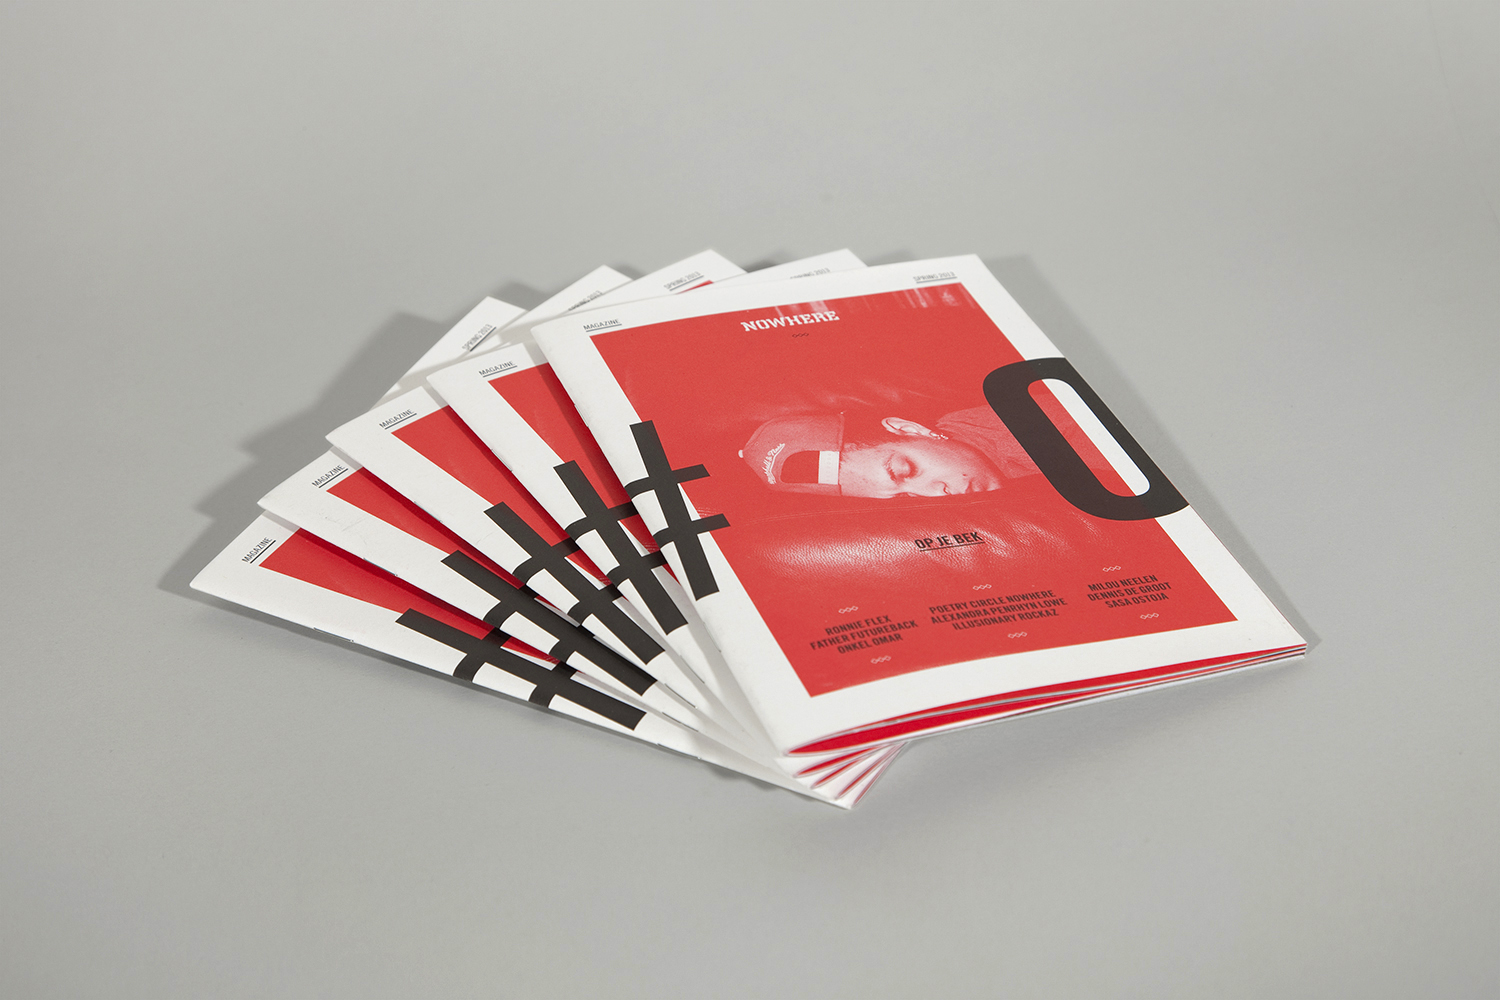 Workshop booklets for  Nowhere Amsterdam .